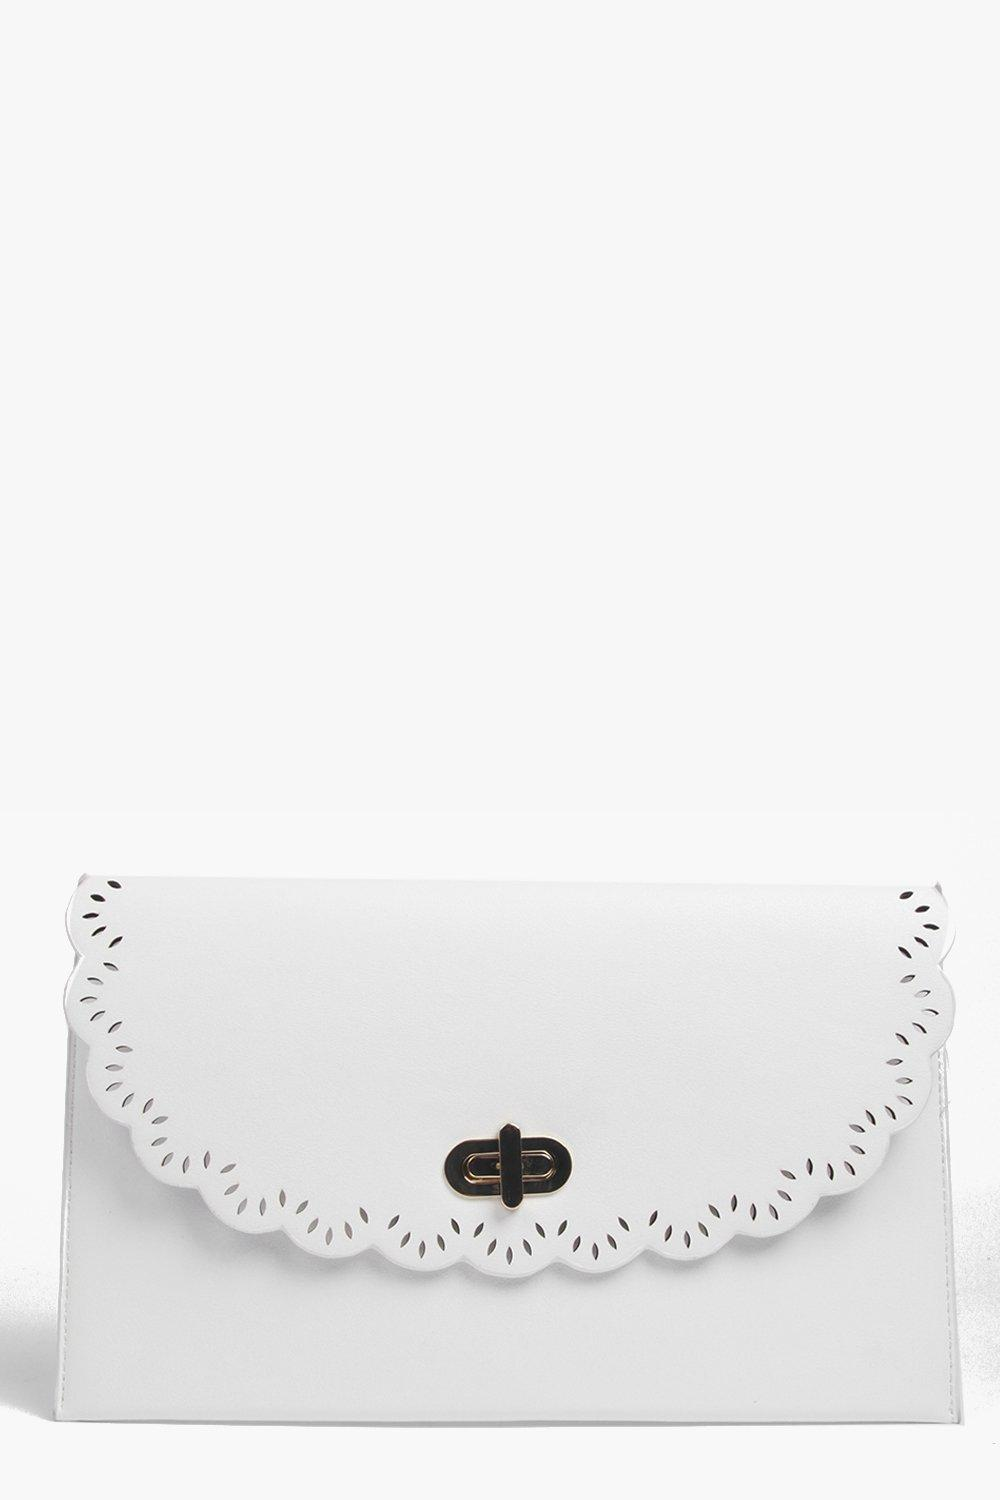 Tegan Scallop Edge Twist Lock Clutch Bag